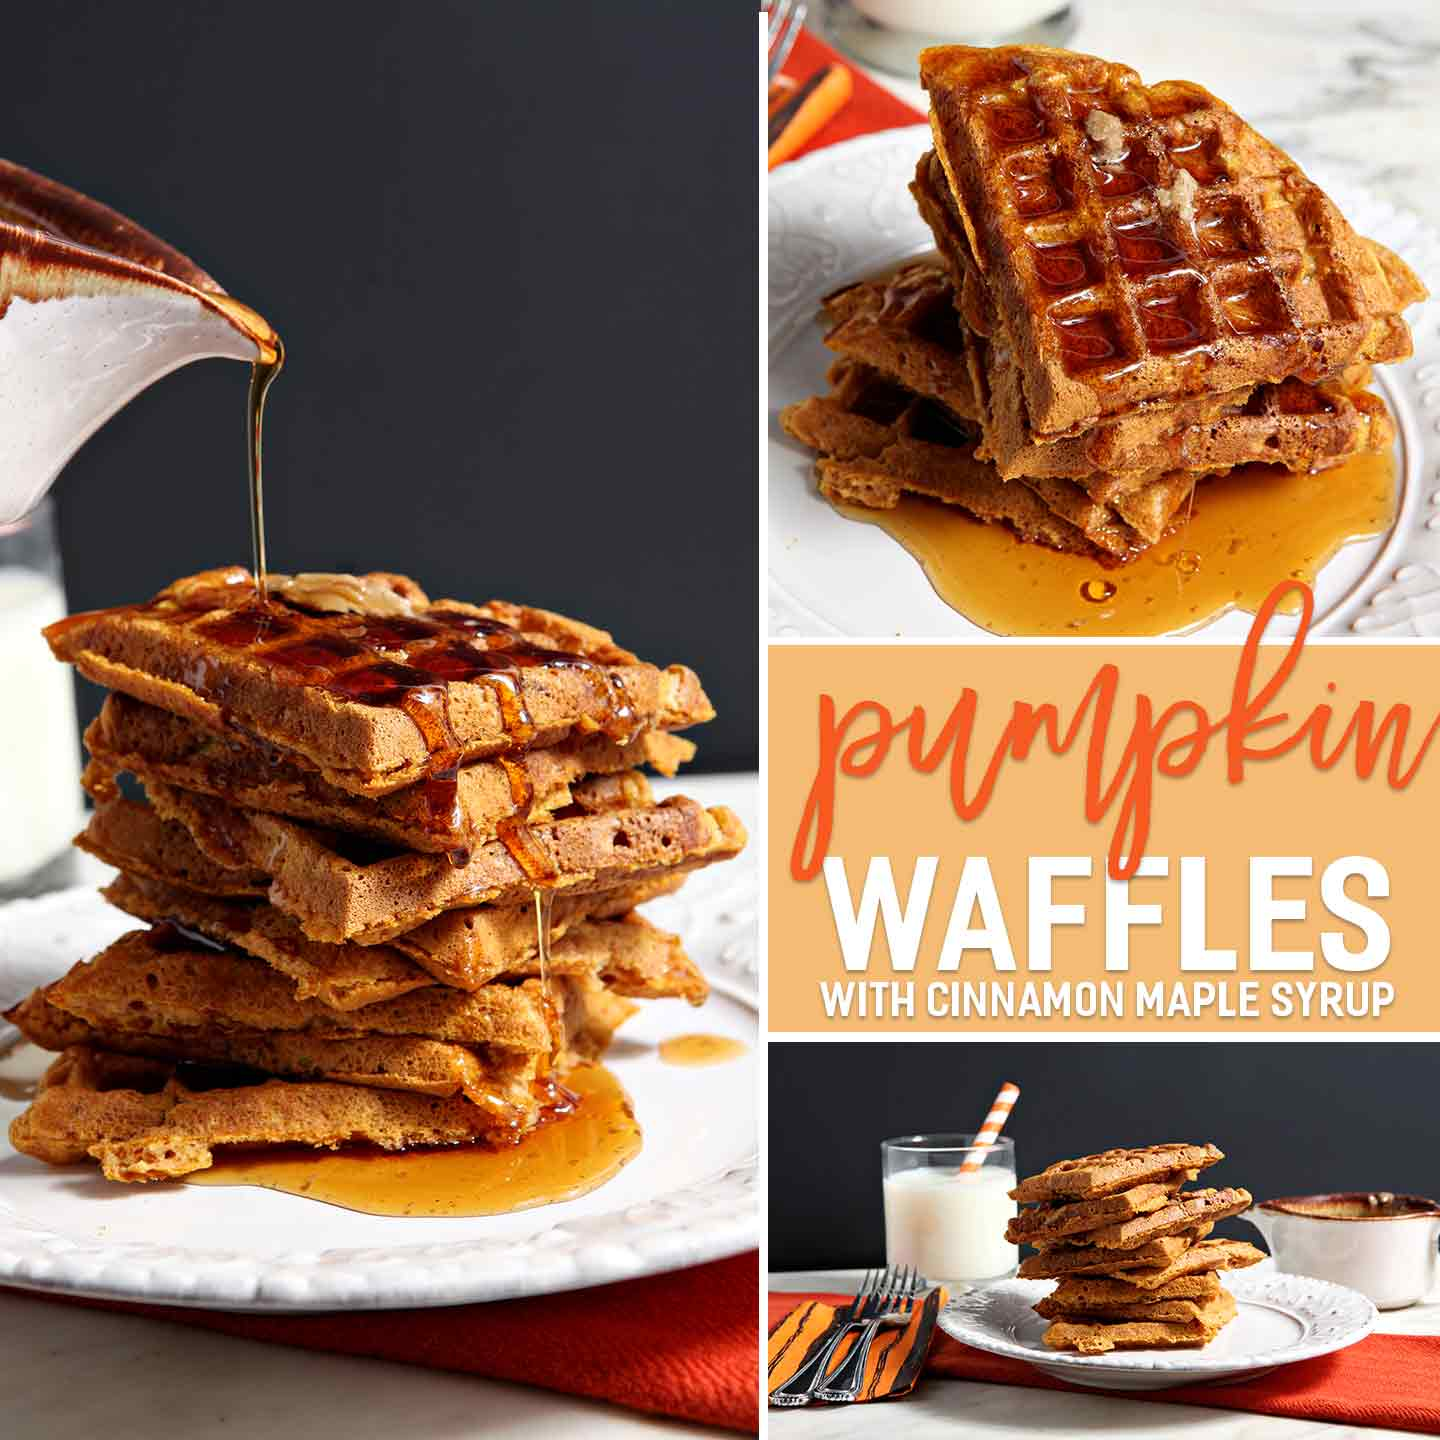 Pumpkin Waffles with Cinnamon Maple Syrup // The Speckled Palate